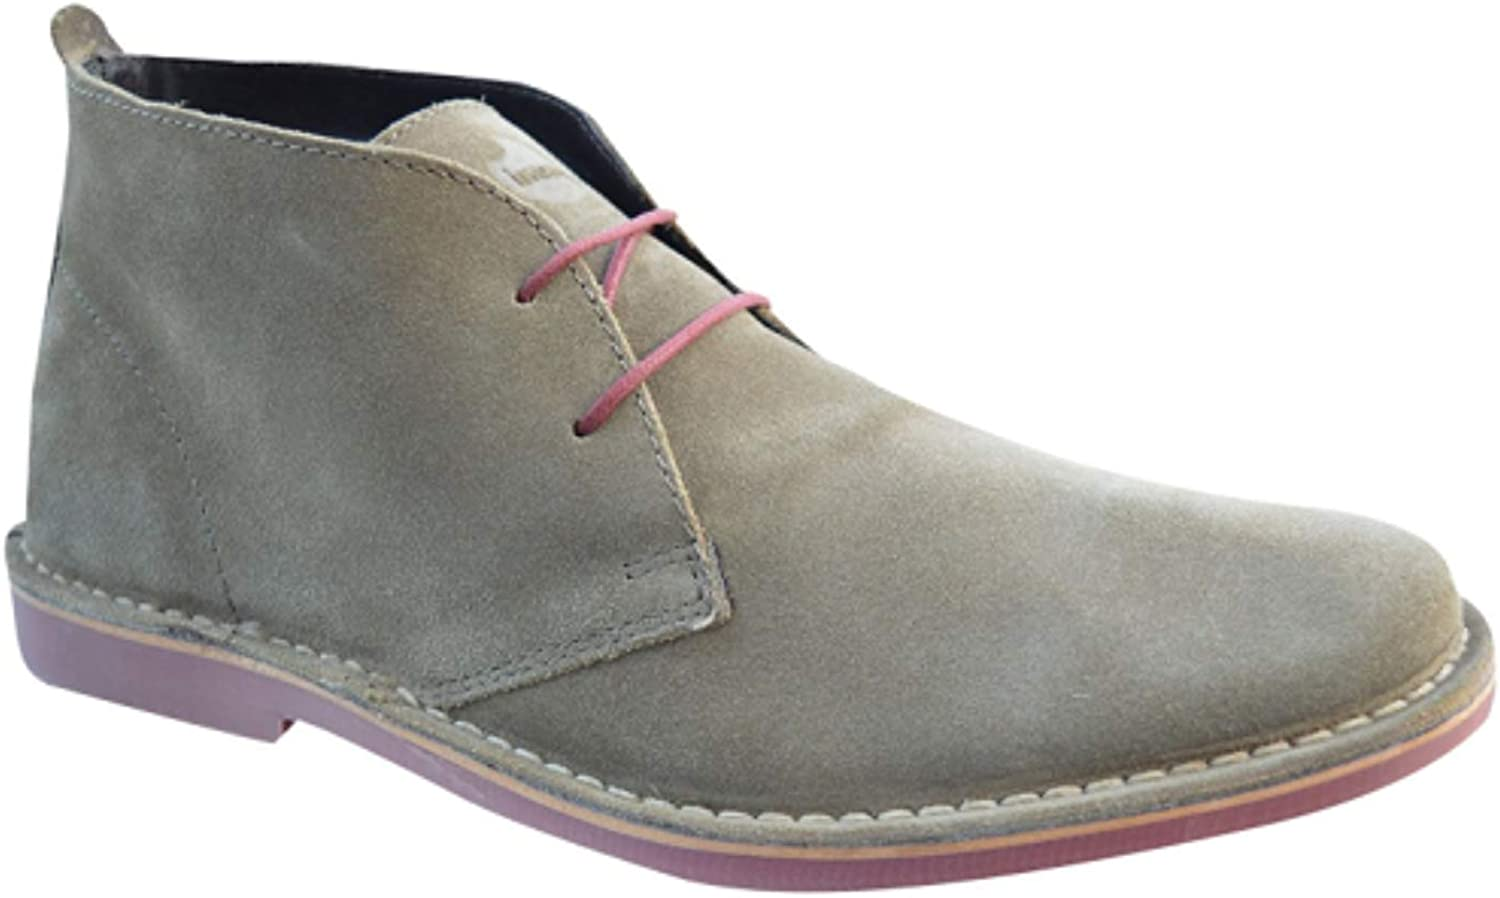 Casual Boots Shoes In UK Sizes 6-12 New Mens  Desert Ankle Chelsea  Formal